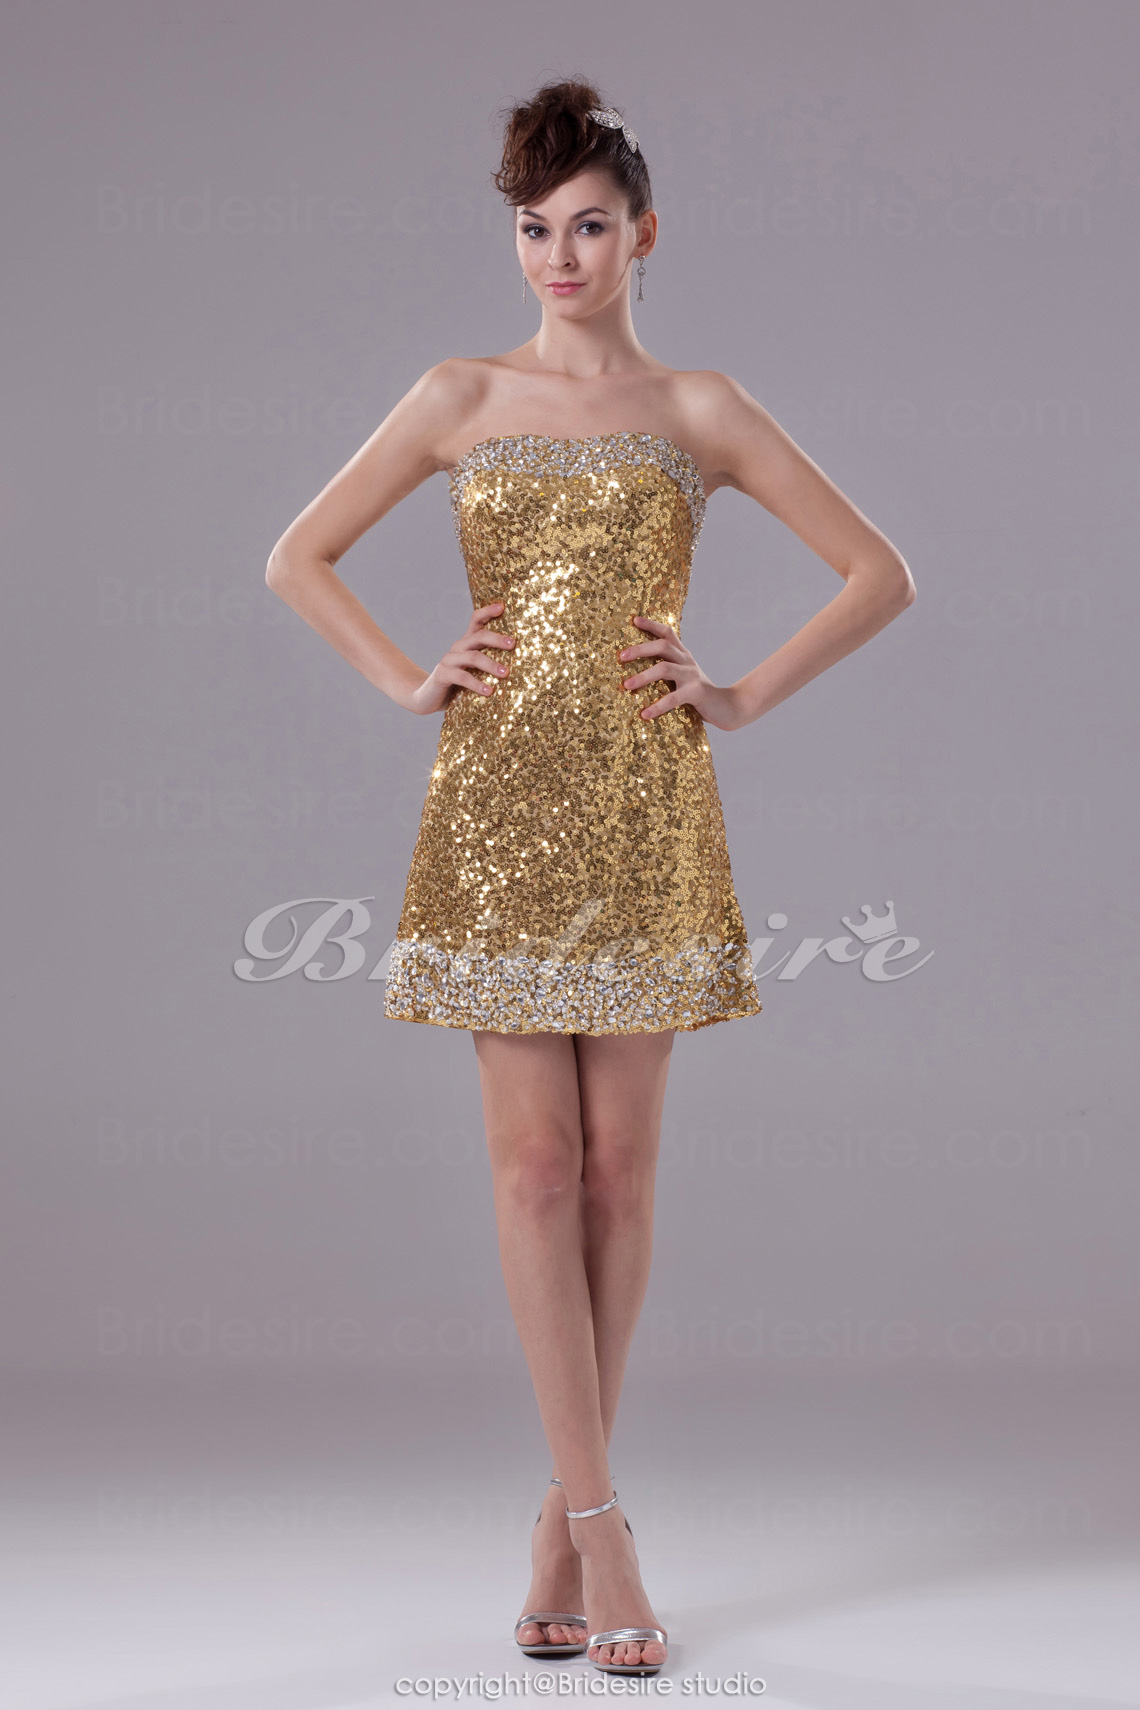 A-line Strapless Short/Mini Sleeveless Sequined Dress